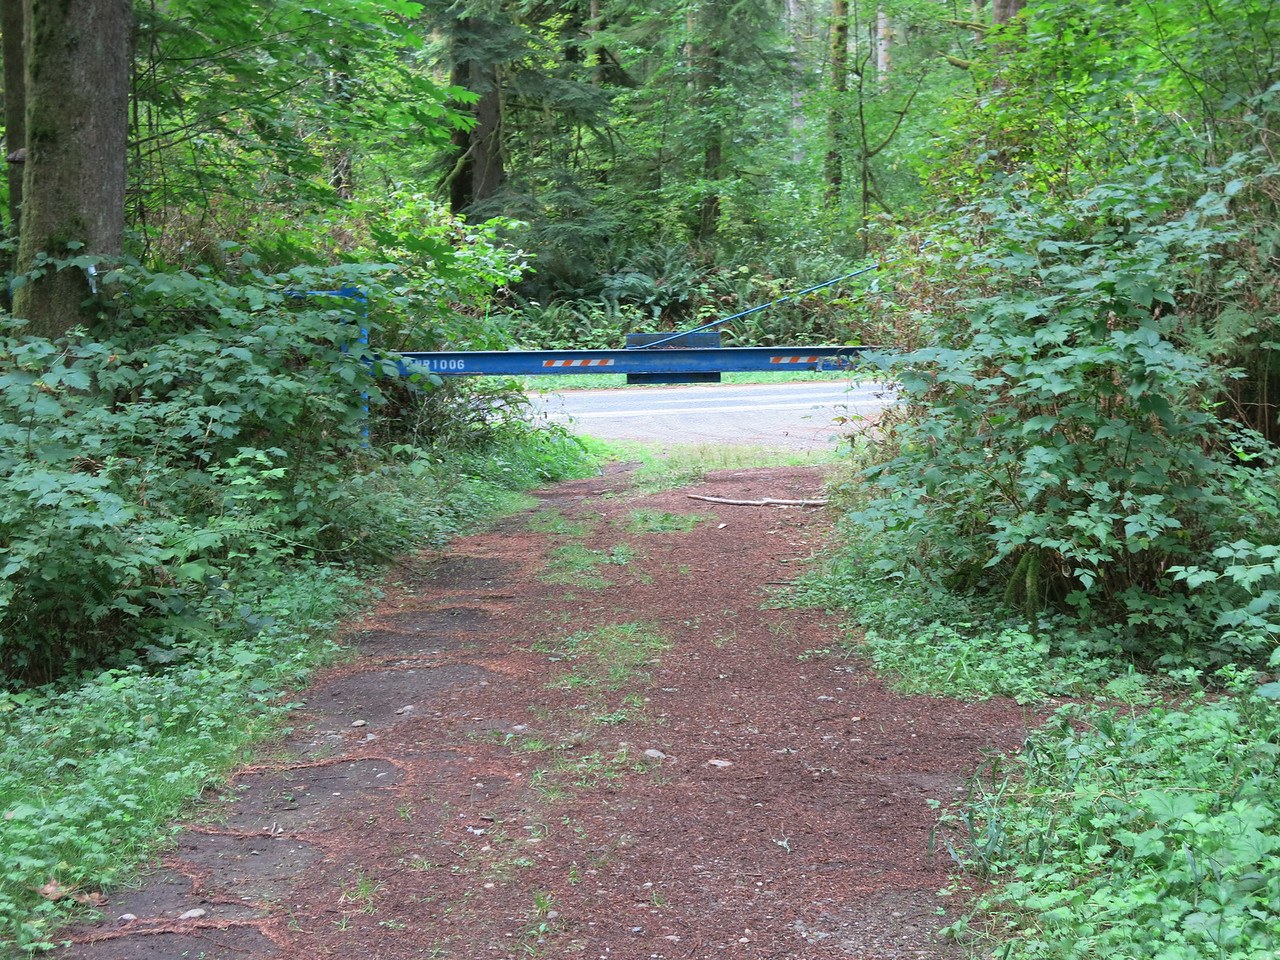 No sign to identify the trail.  Just this gate.